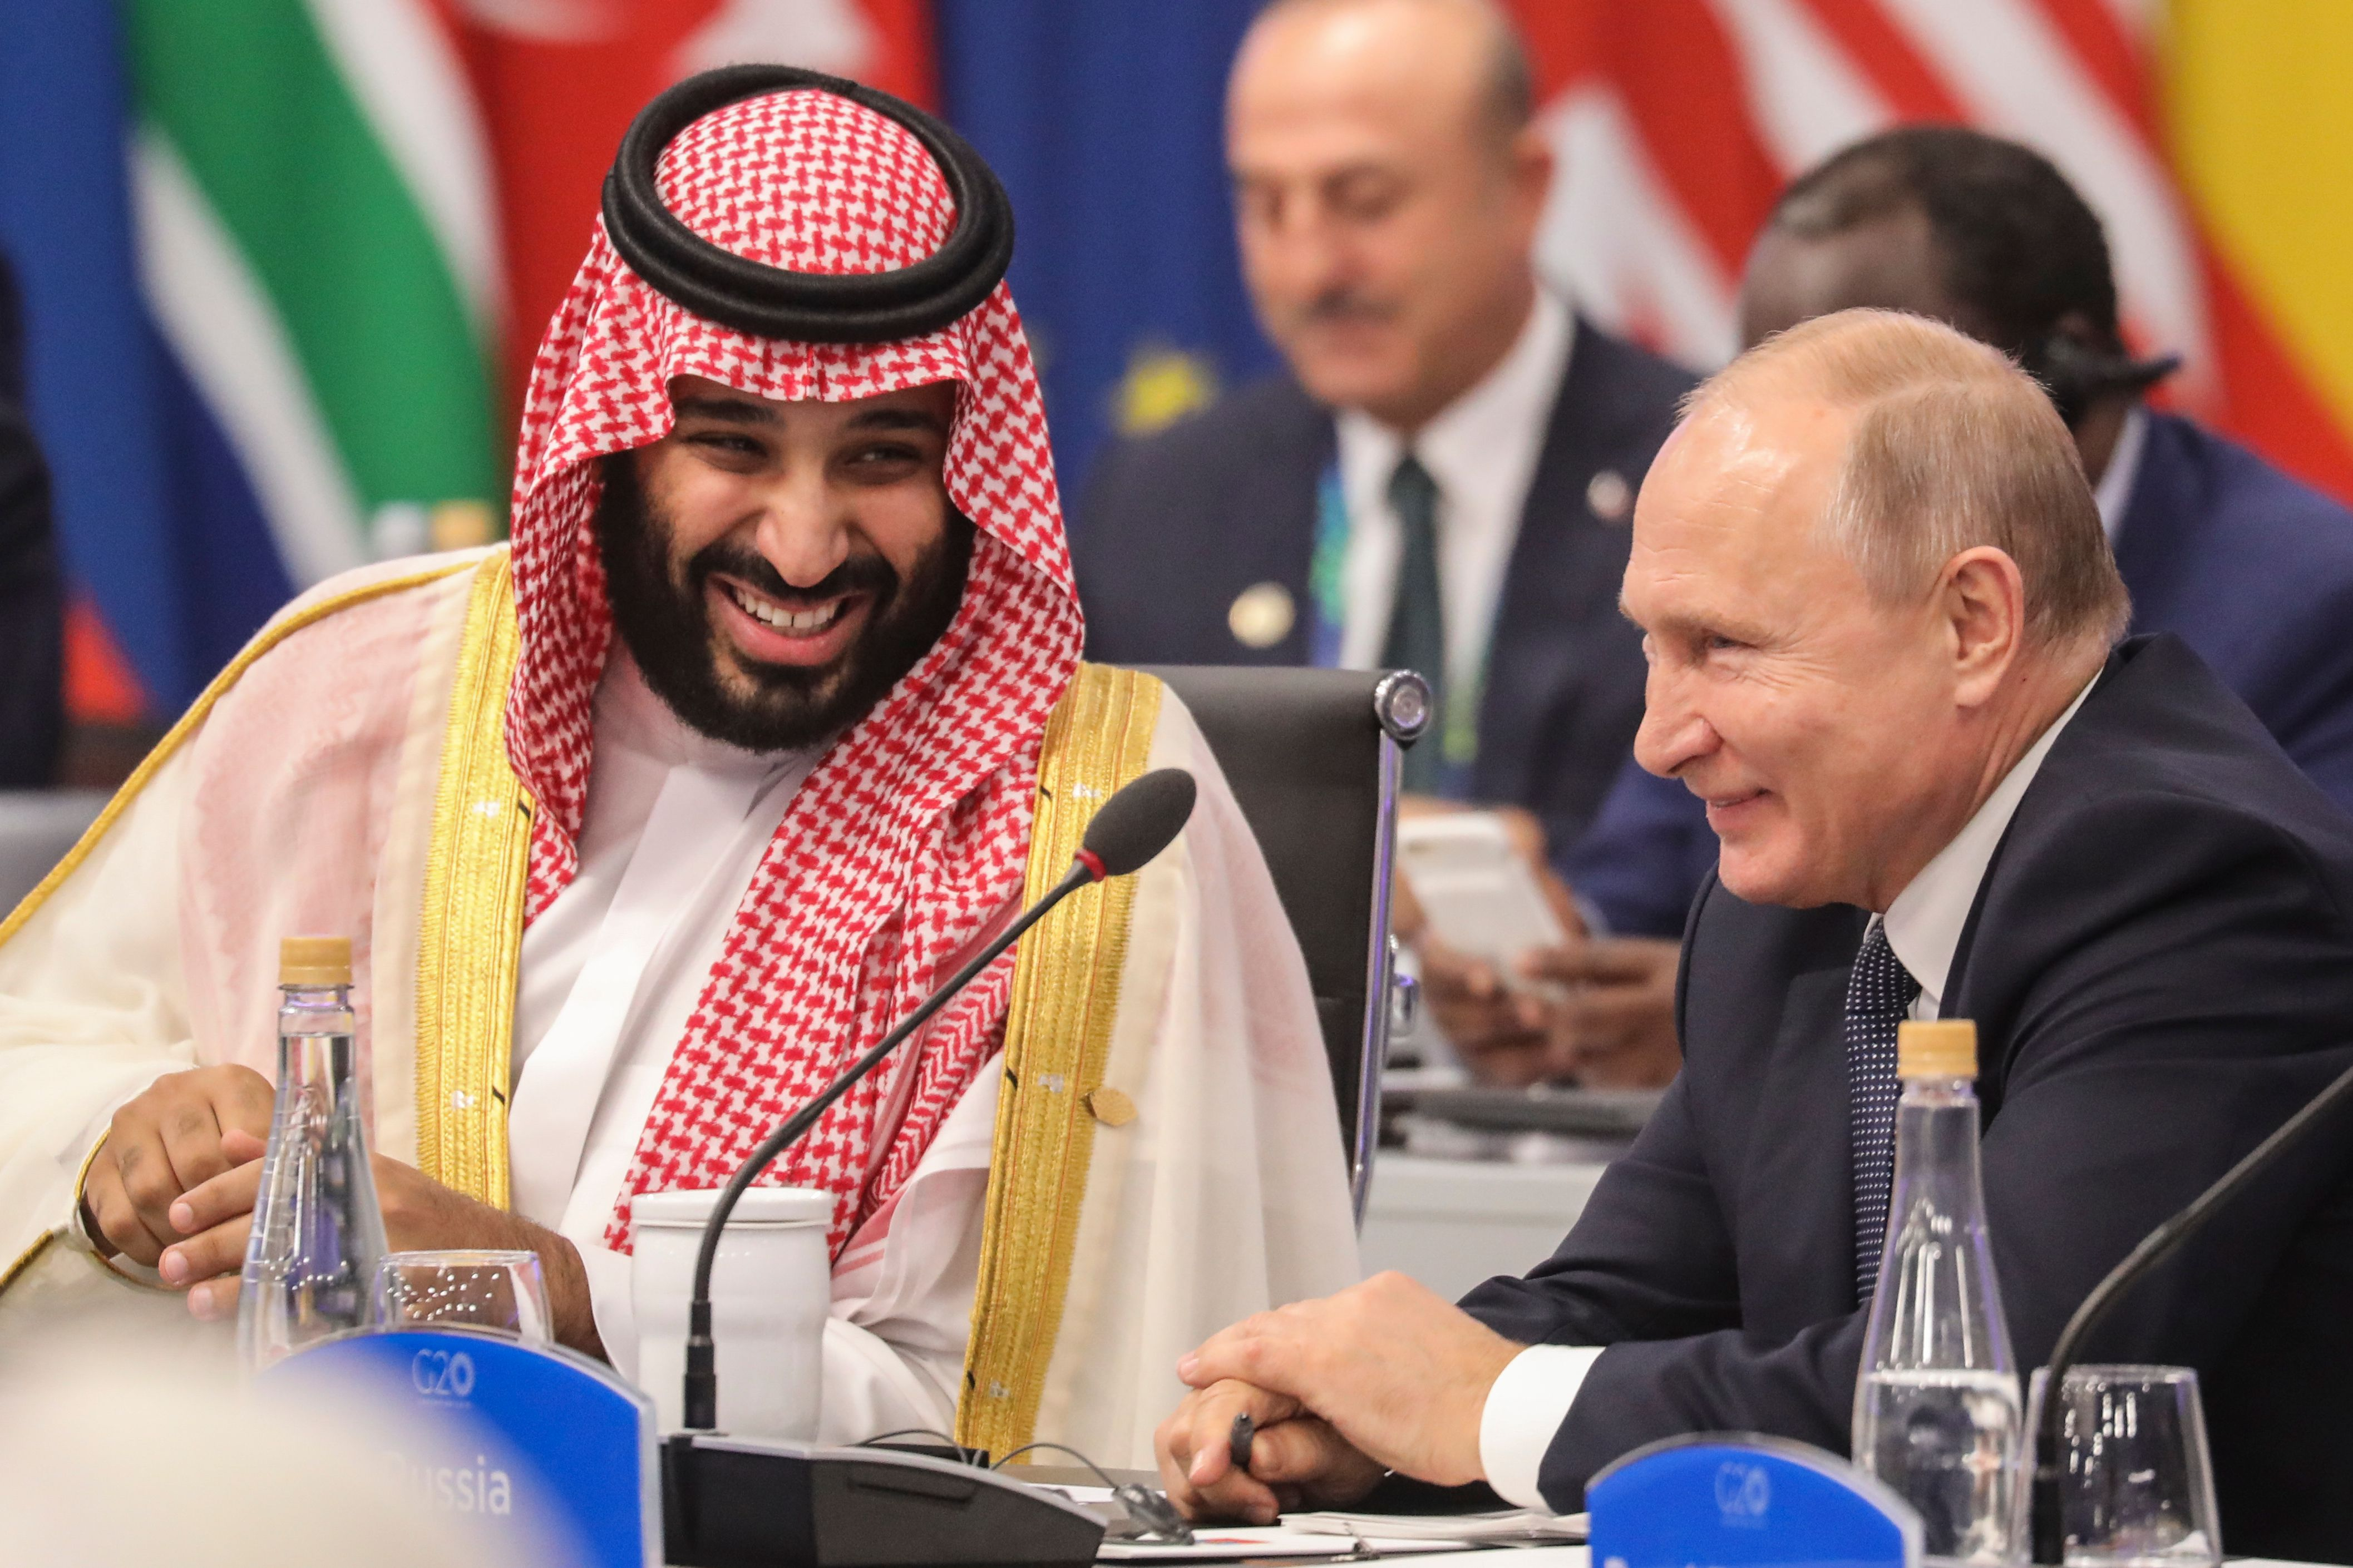 Russia's President Vladimir Putin (R) and Saudi Arabia's Crown Prince Mohammed bin Salman attend the G20 Leaders' Summit in Buenos Aires, on November 30, 2018. (LUDOVIC MARIN/AFP/Getty Images)